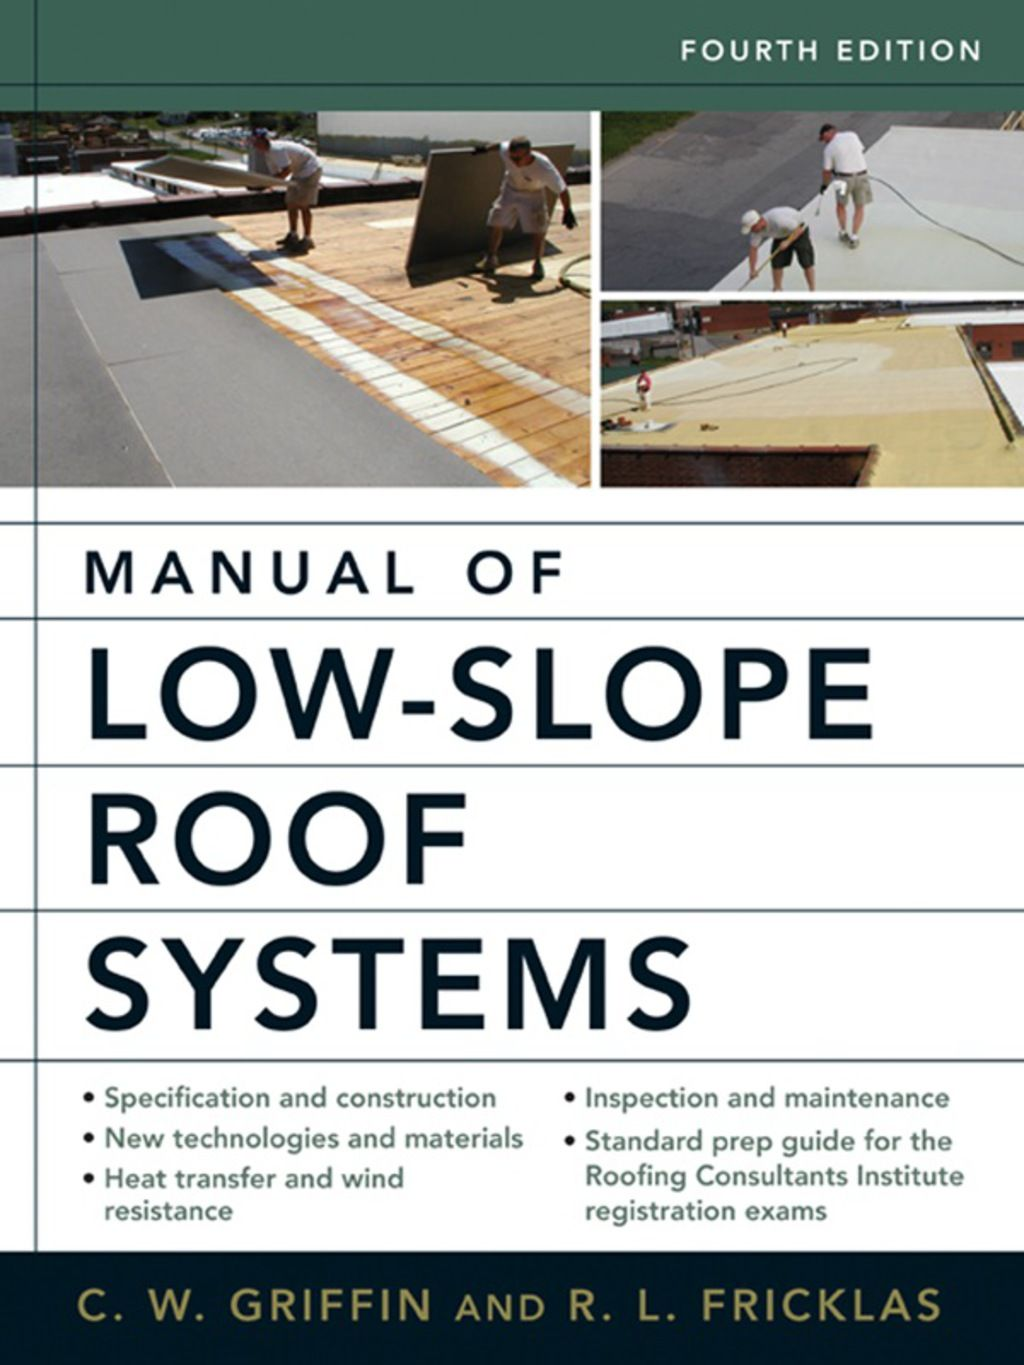 Types Of Sloped Roofing System Manual Guide